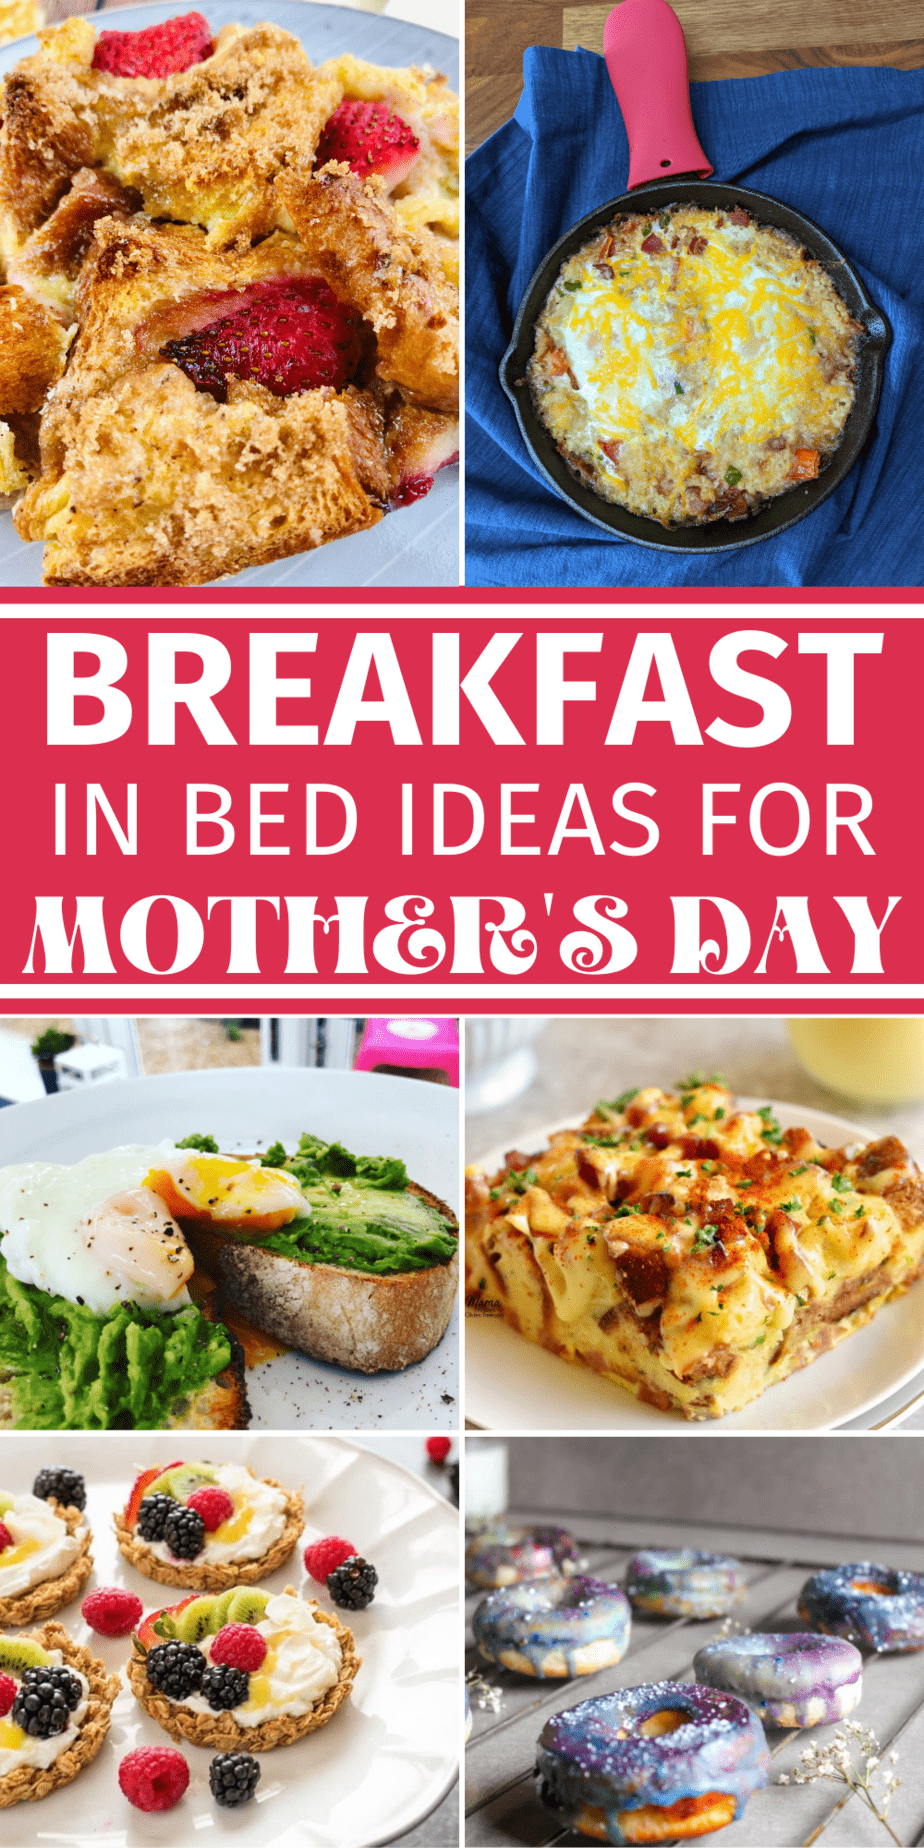 Breakfast in Bed Recipe Ideas for Mother's Day